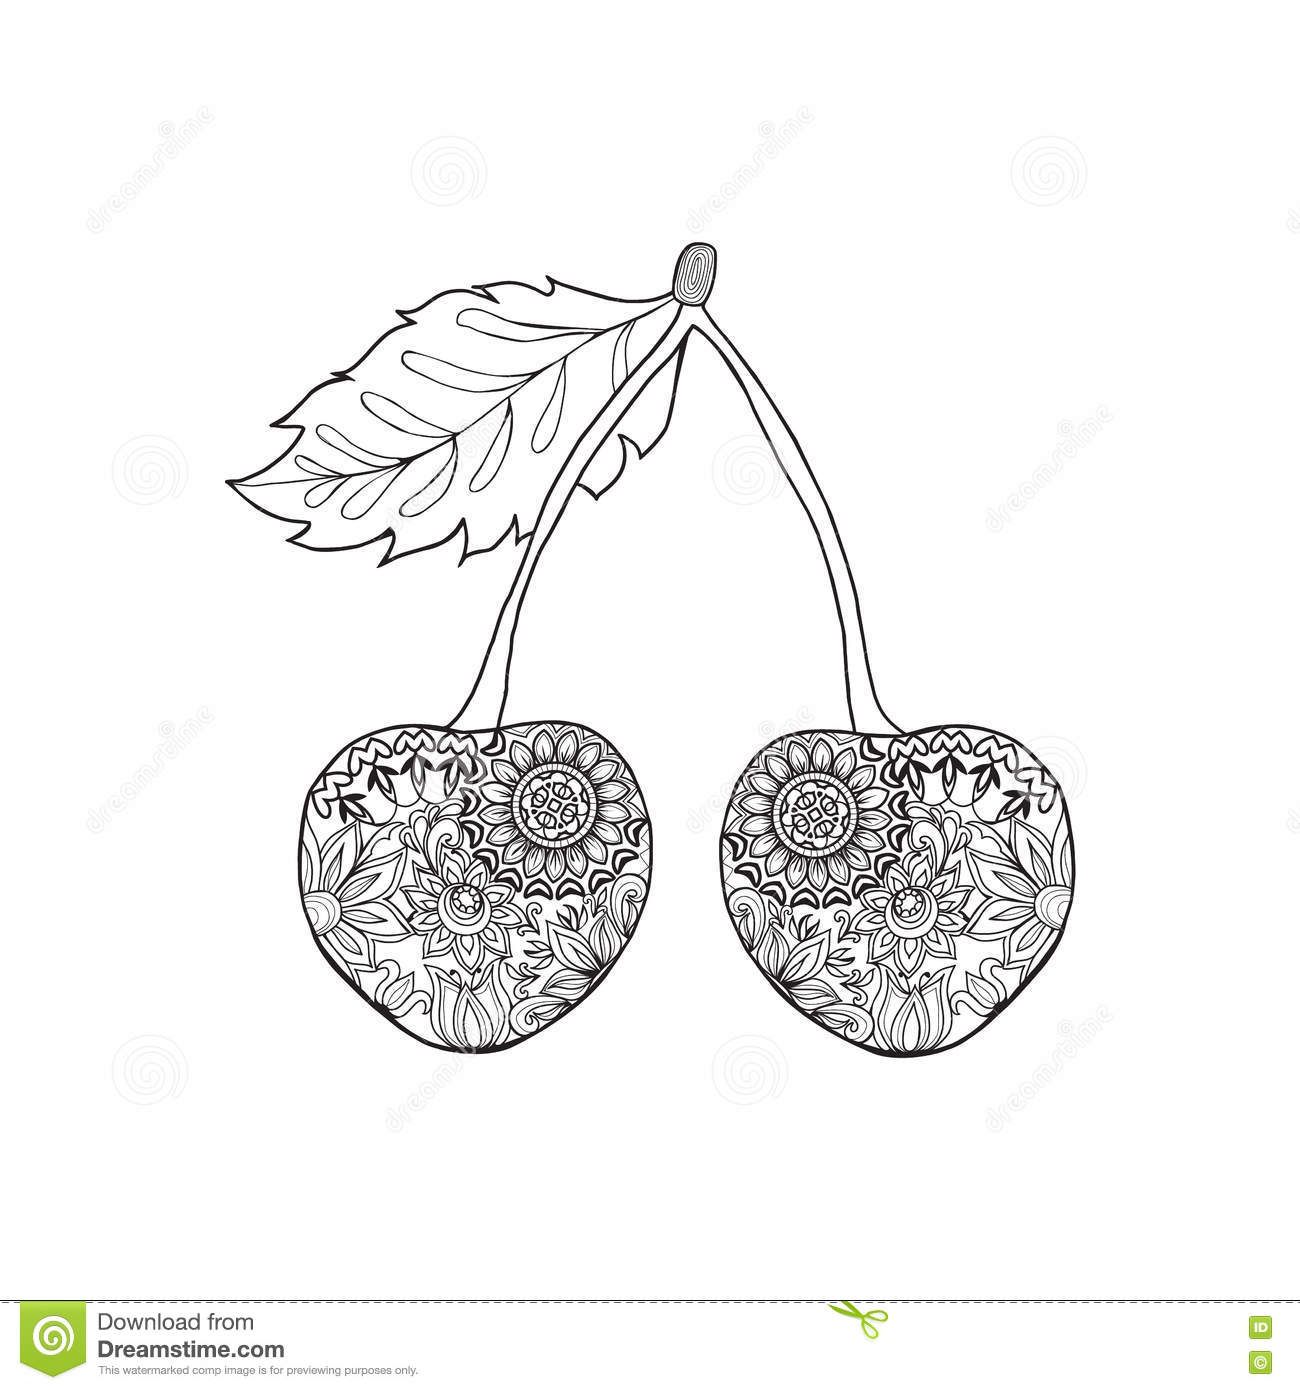 Doodles ornament zentangle cherries stock vector image for Where the red fern grows coloring pages